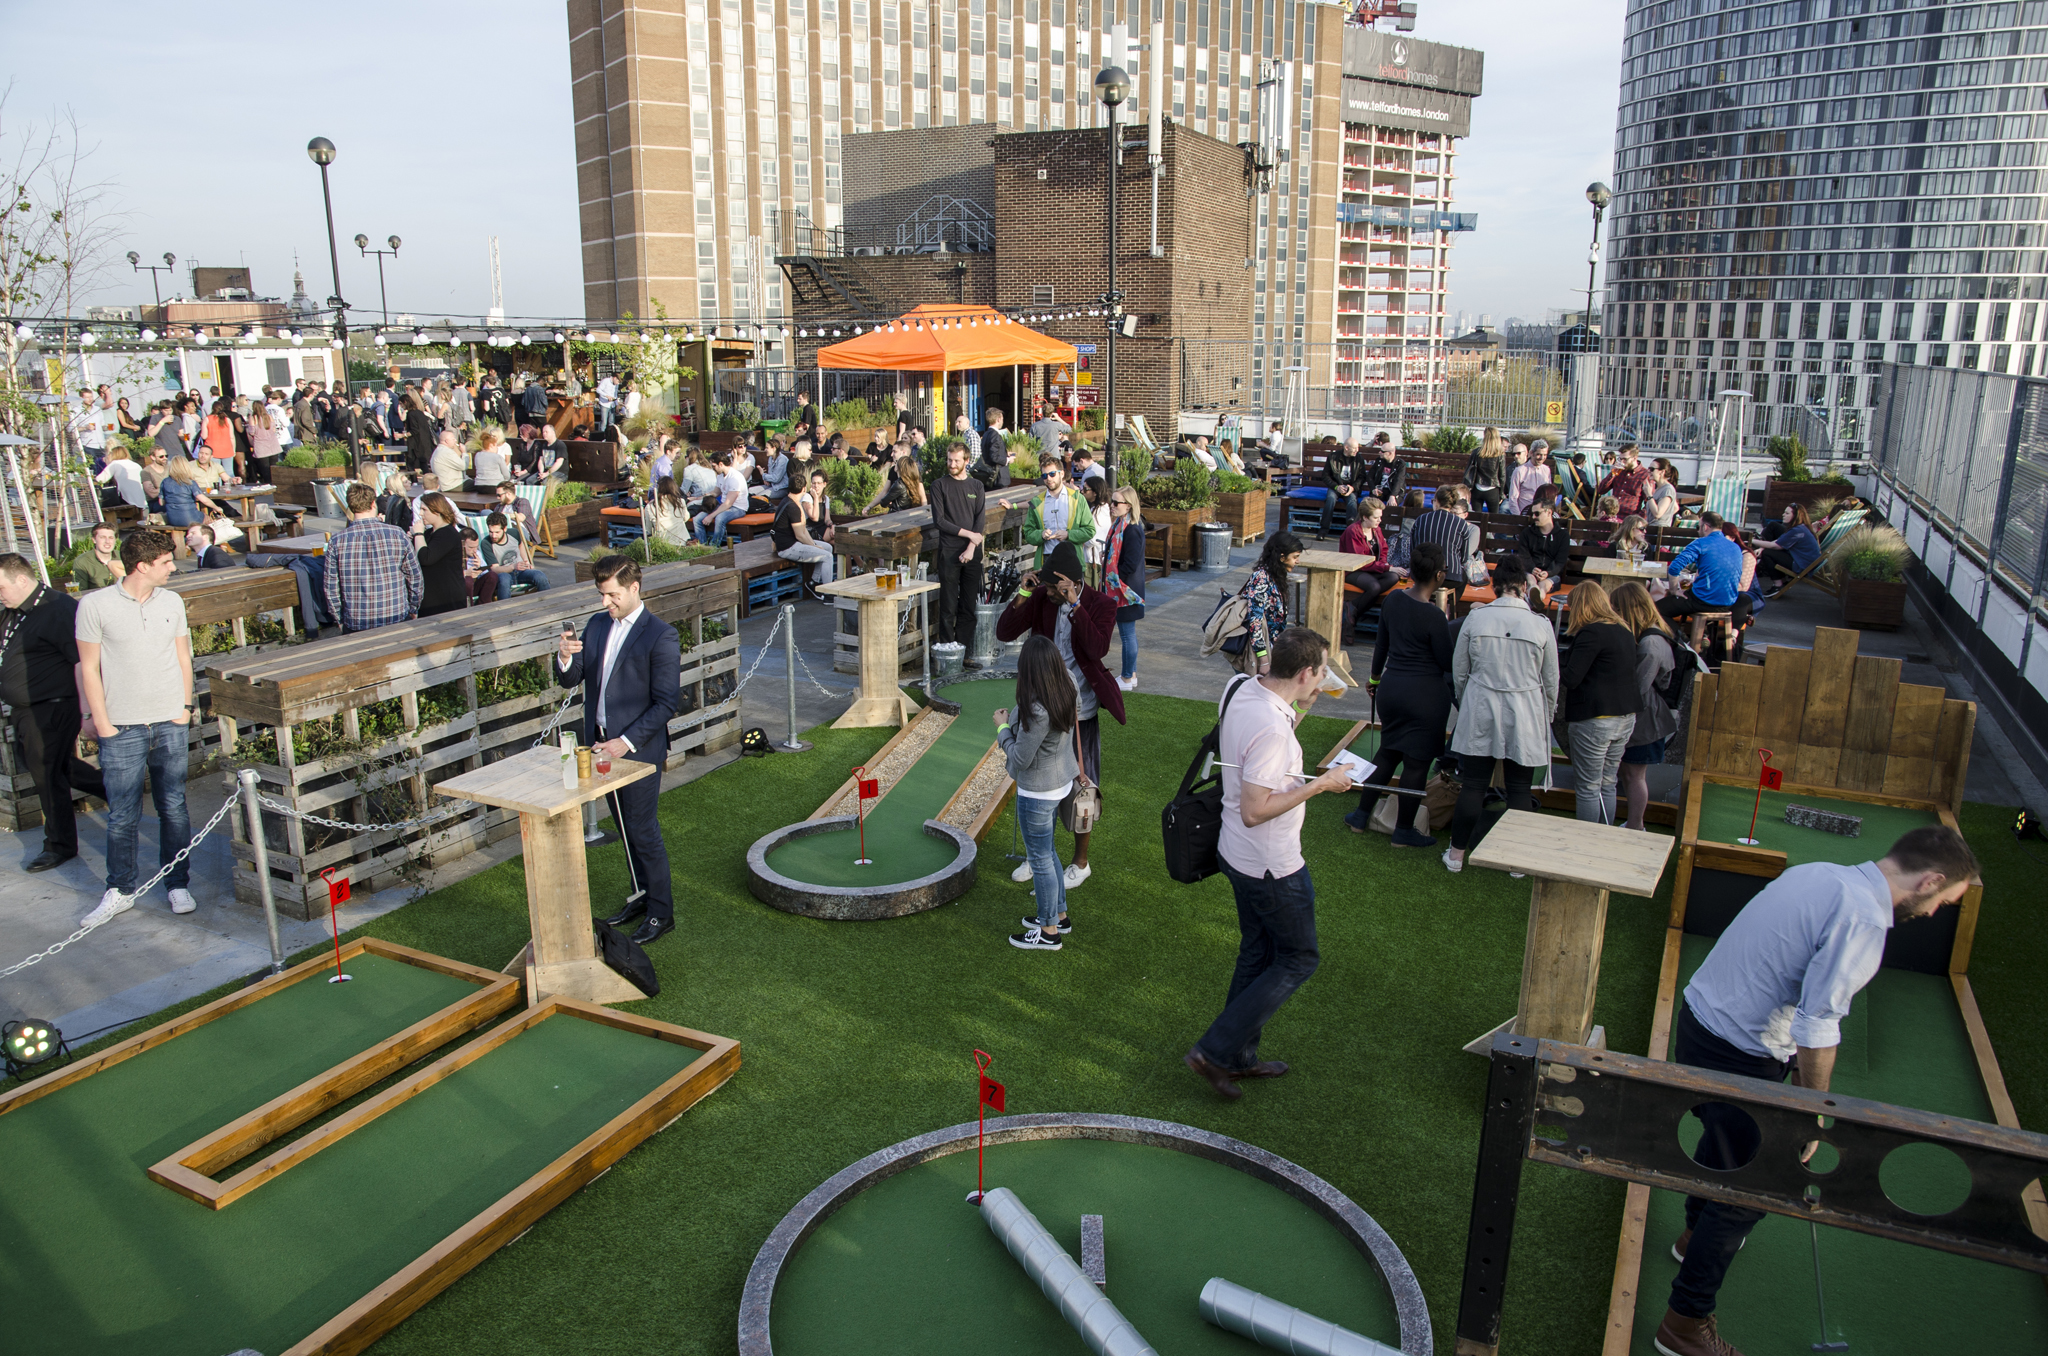 Roof East - Birdies crazy golf, rooftop cinema, rockadollar hotd